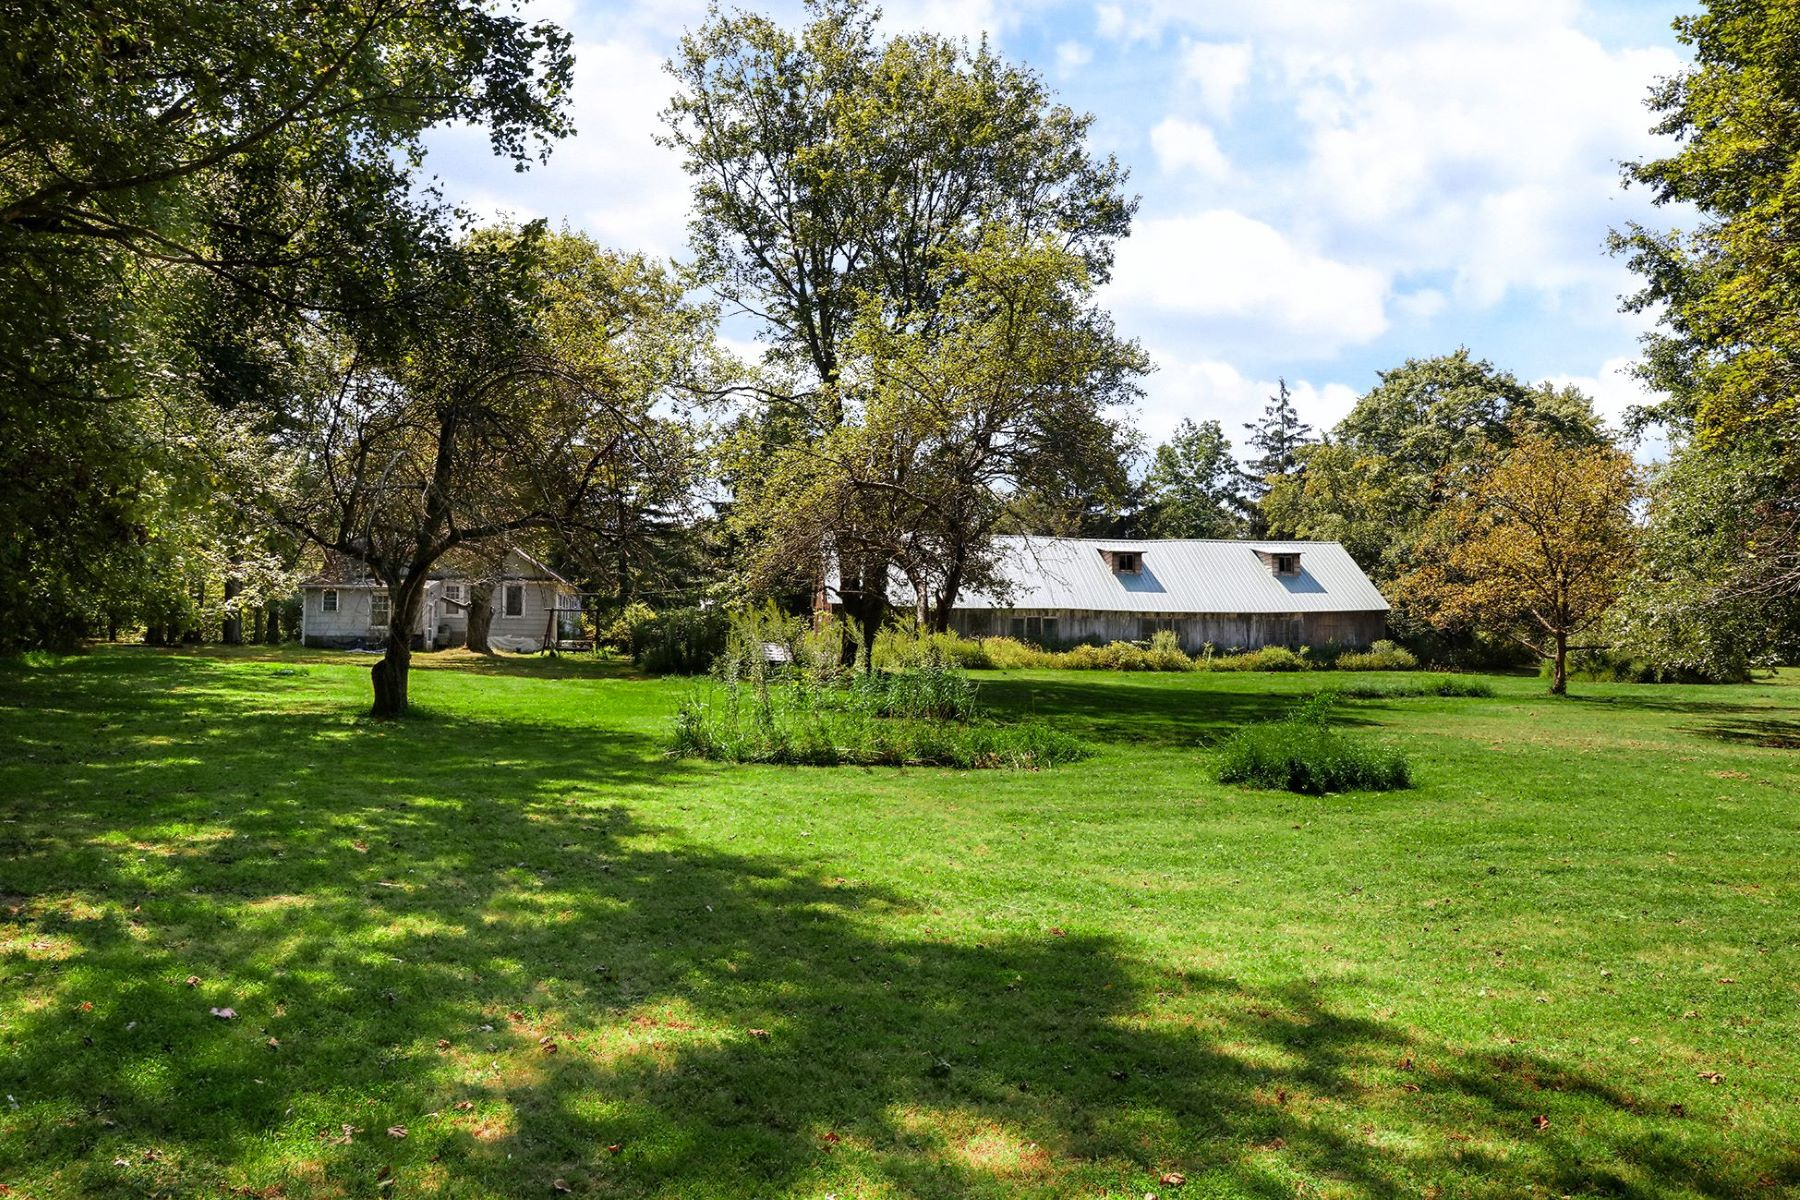 Additional photo for property listing at Just The Right Size For A Gentleman's Farm 439 Route 31, Ringoes, New Jersey 08551 United States